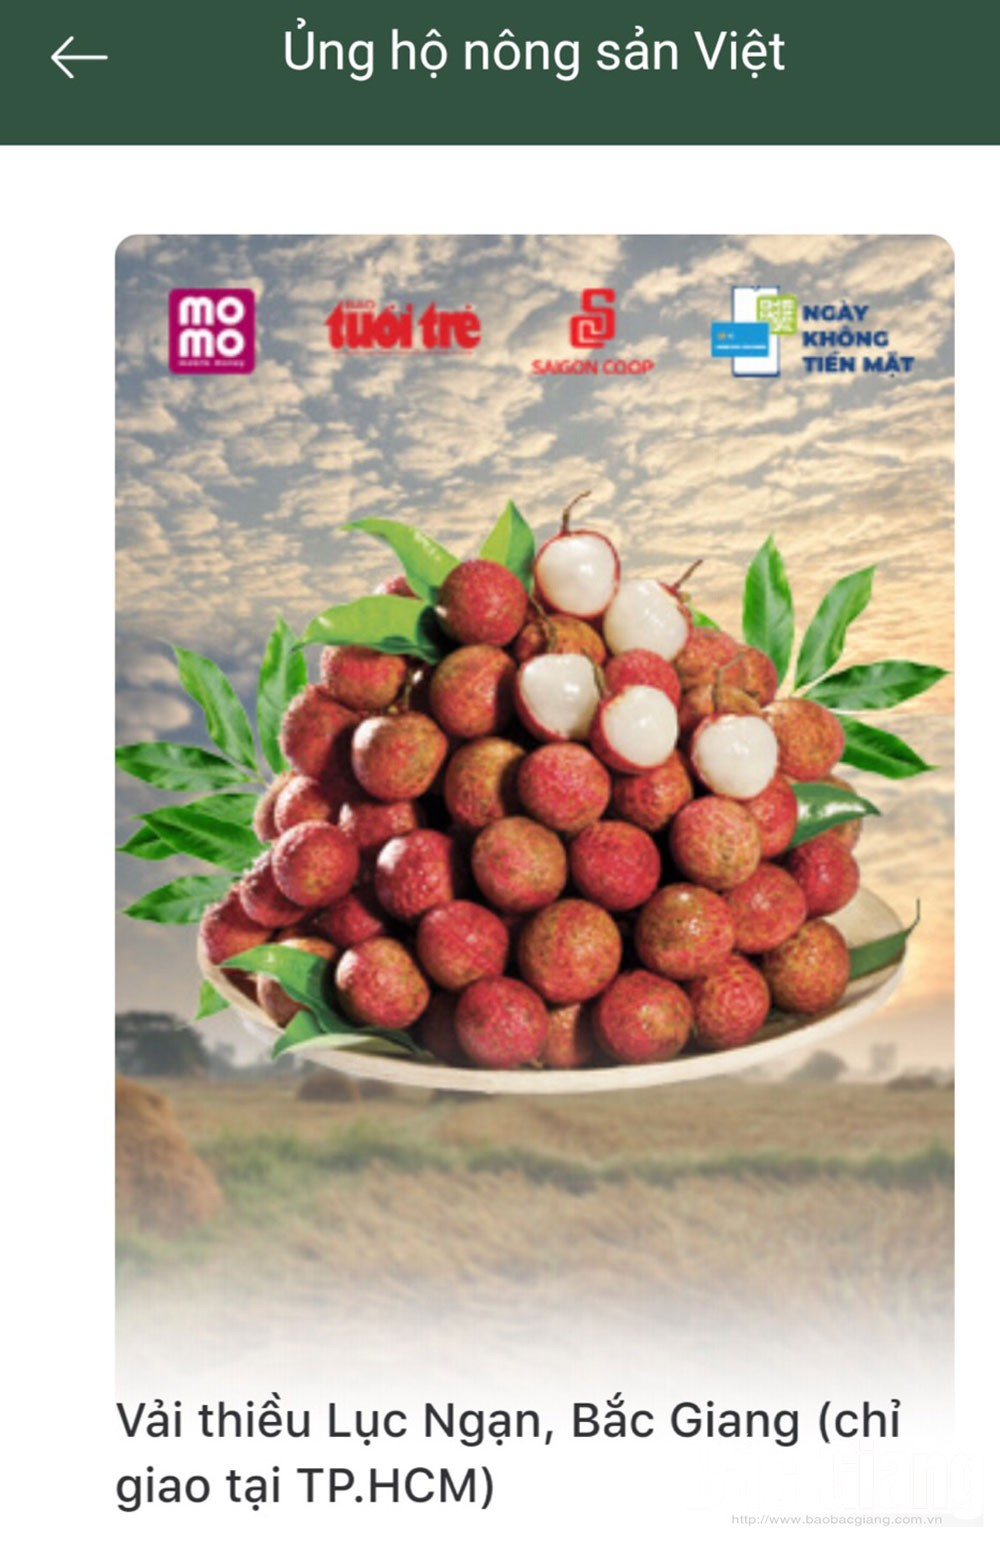 37 tonnes of lychee, MoMo pocket, Bac Giang province, Luc Ngan lychee, Supporting Vietnamese farm produce, signature and quality product